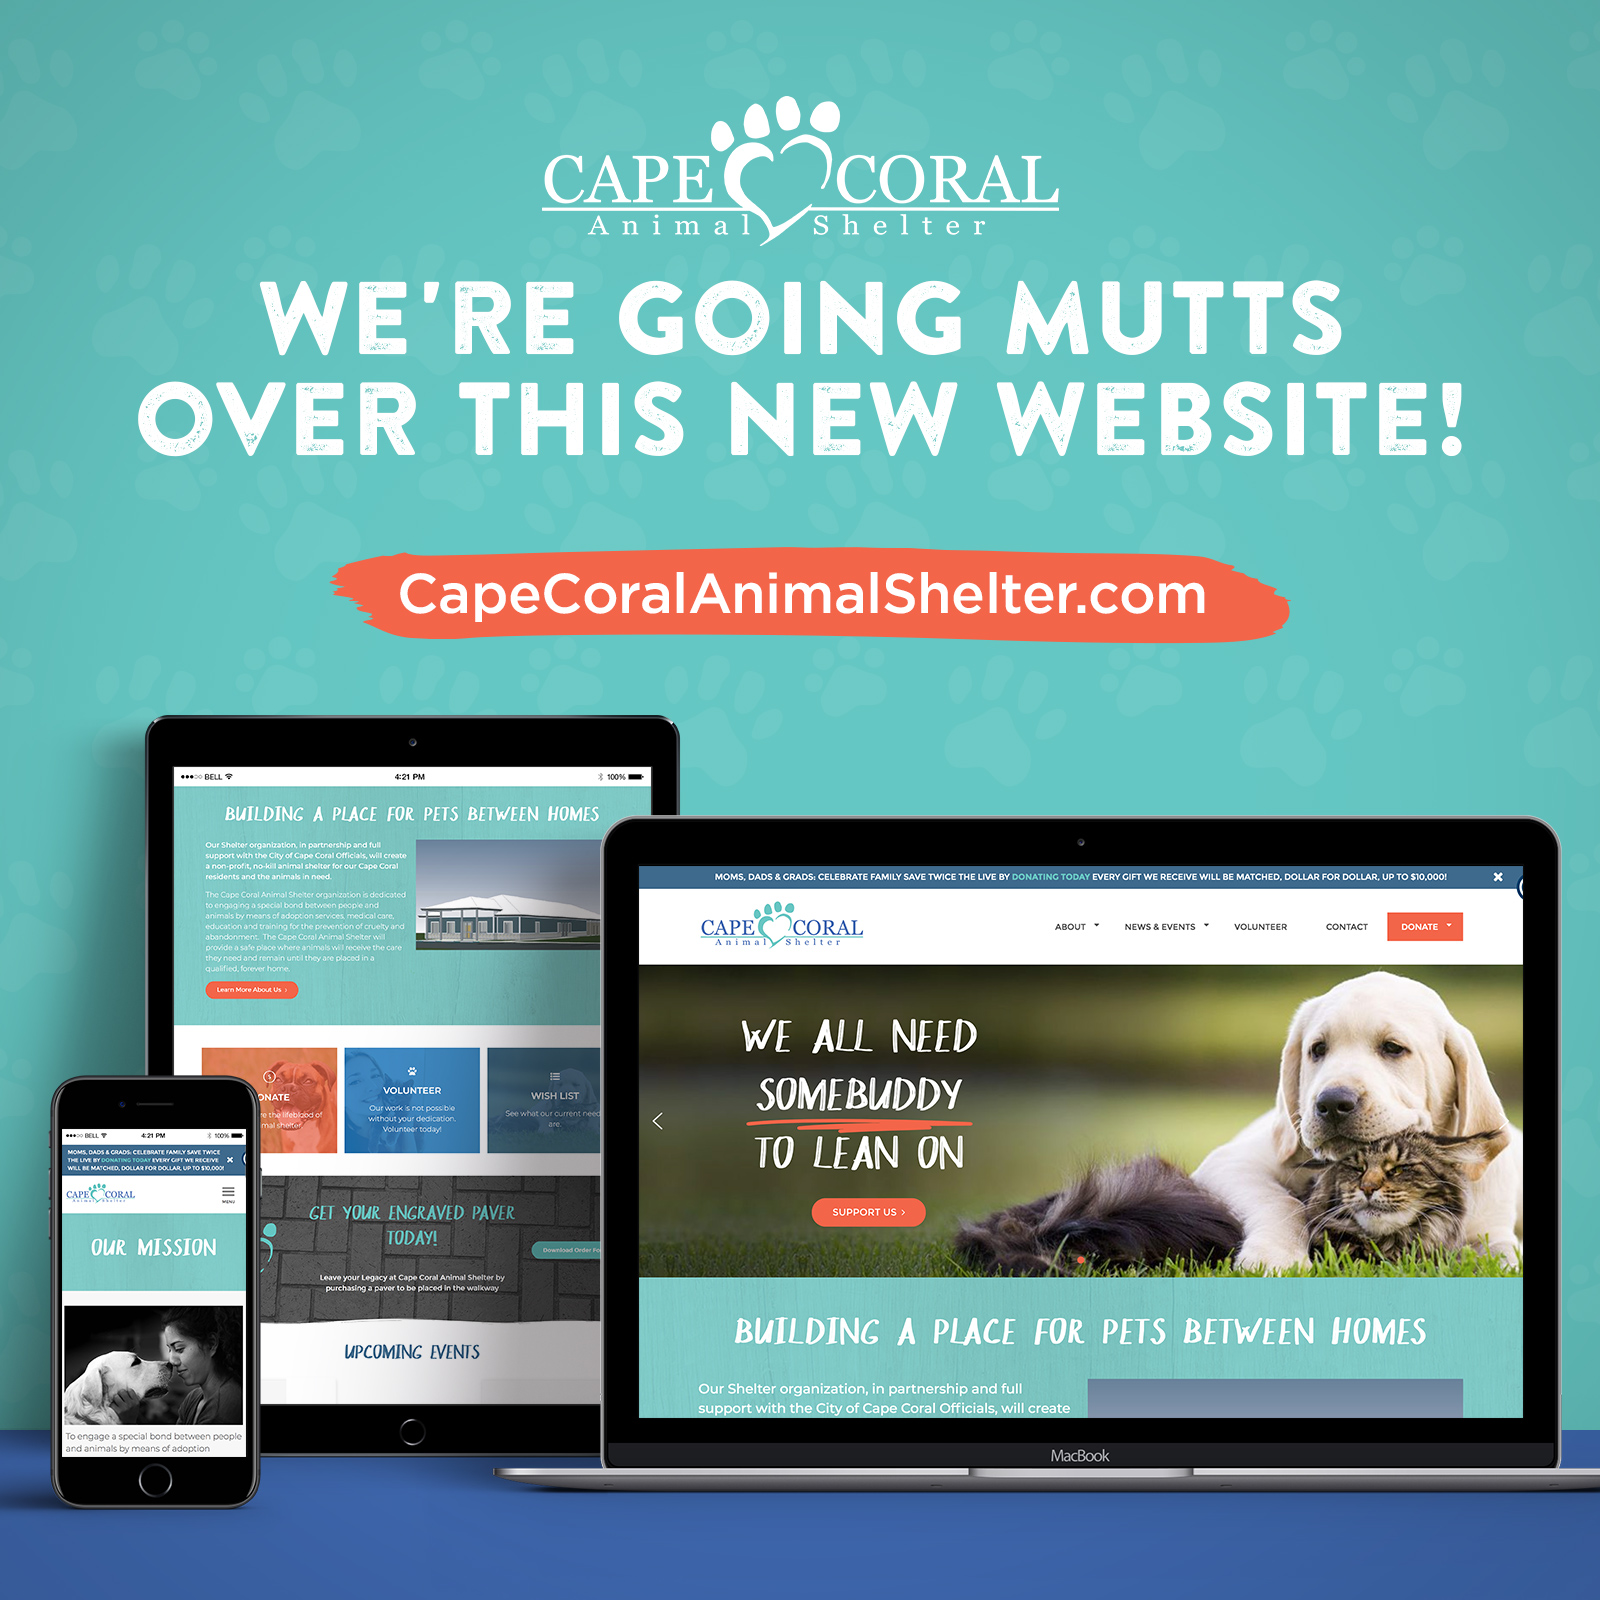 New Web Site Launched for Cape Coral Animal Shelter